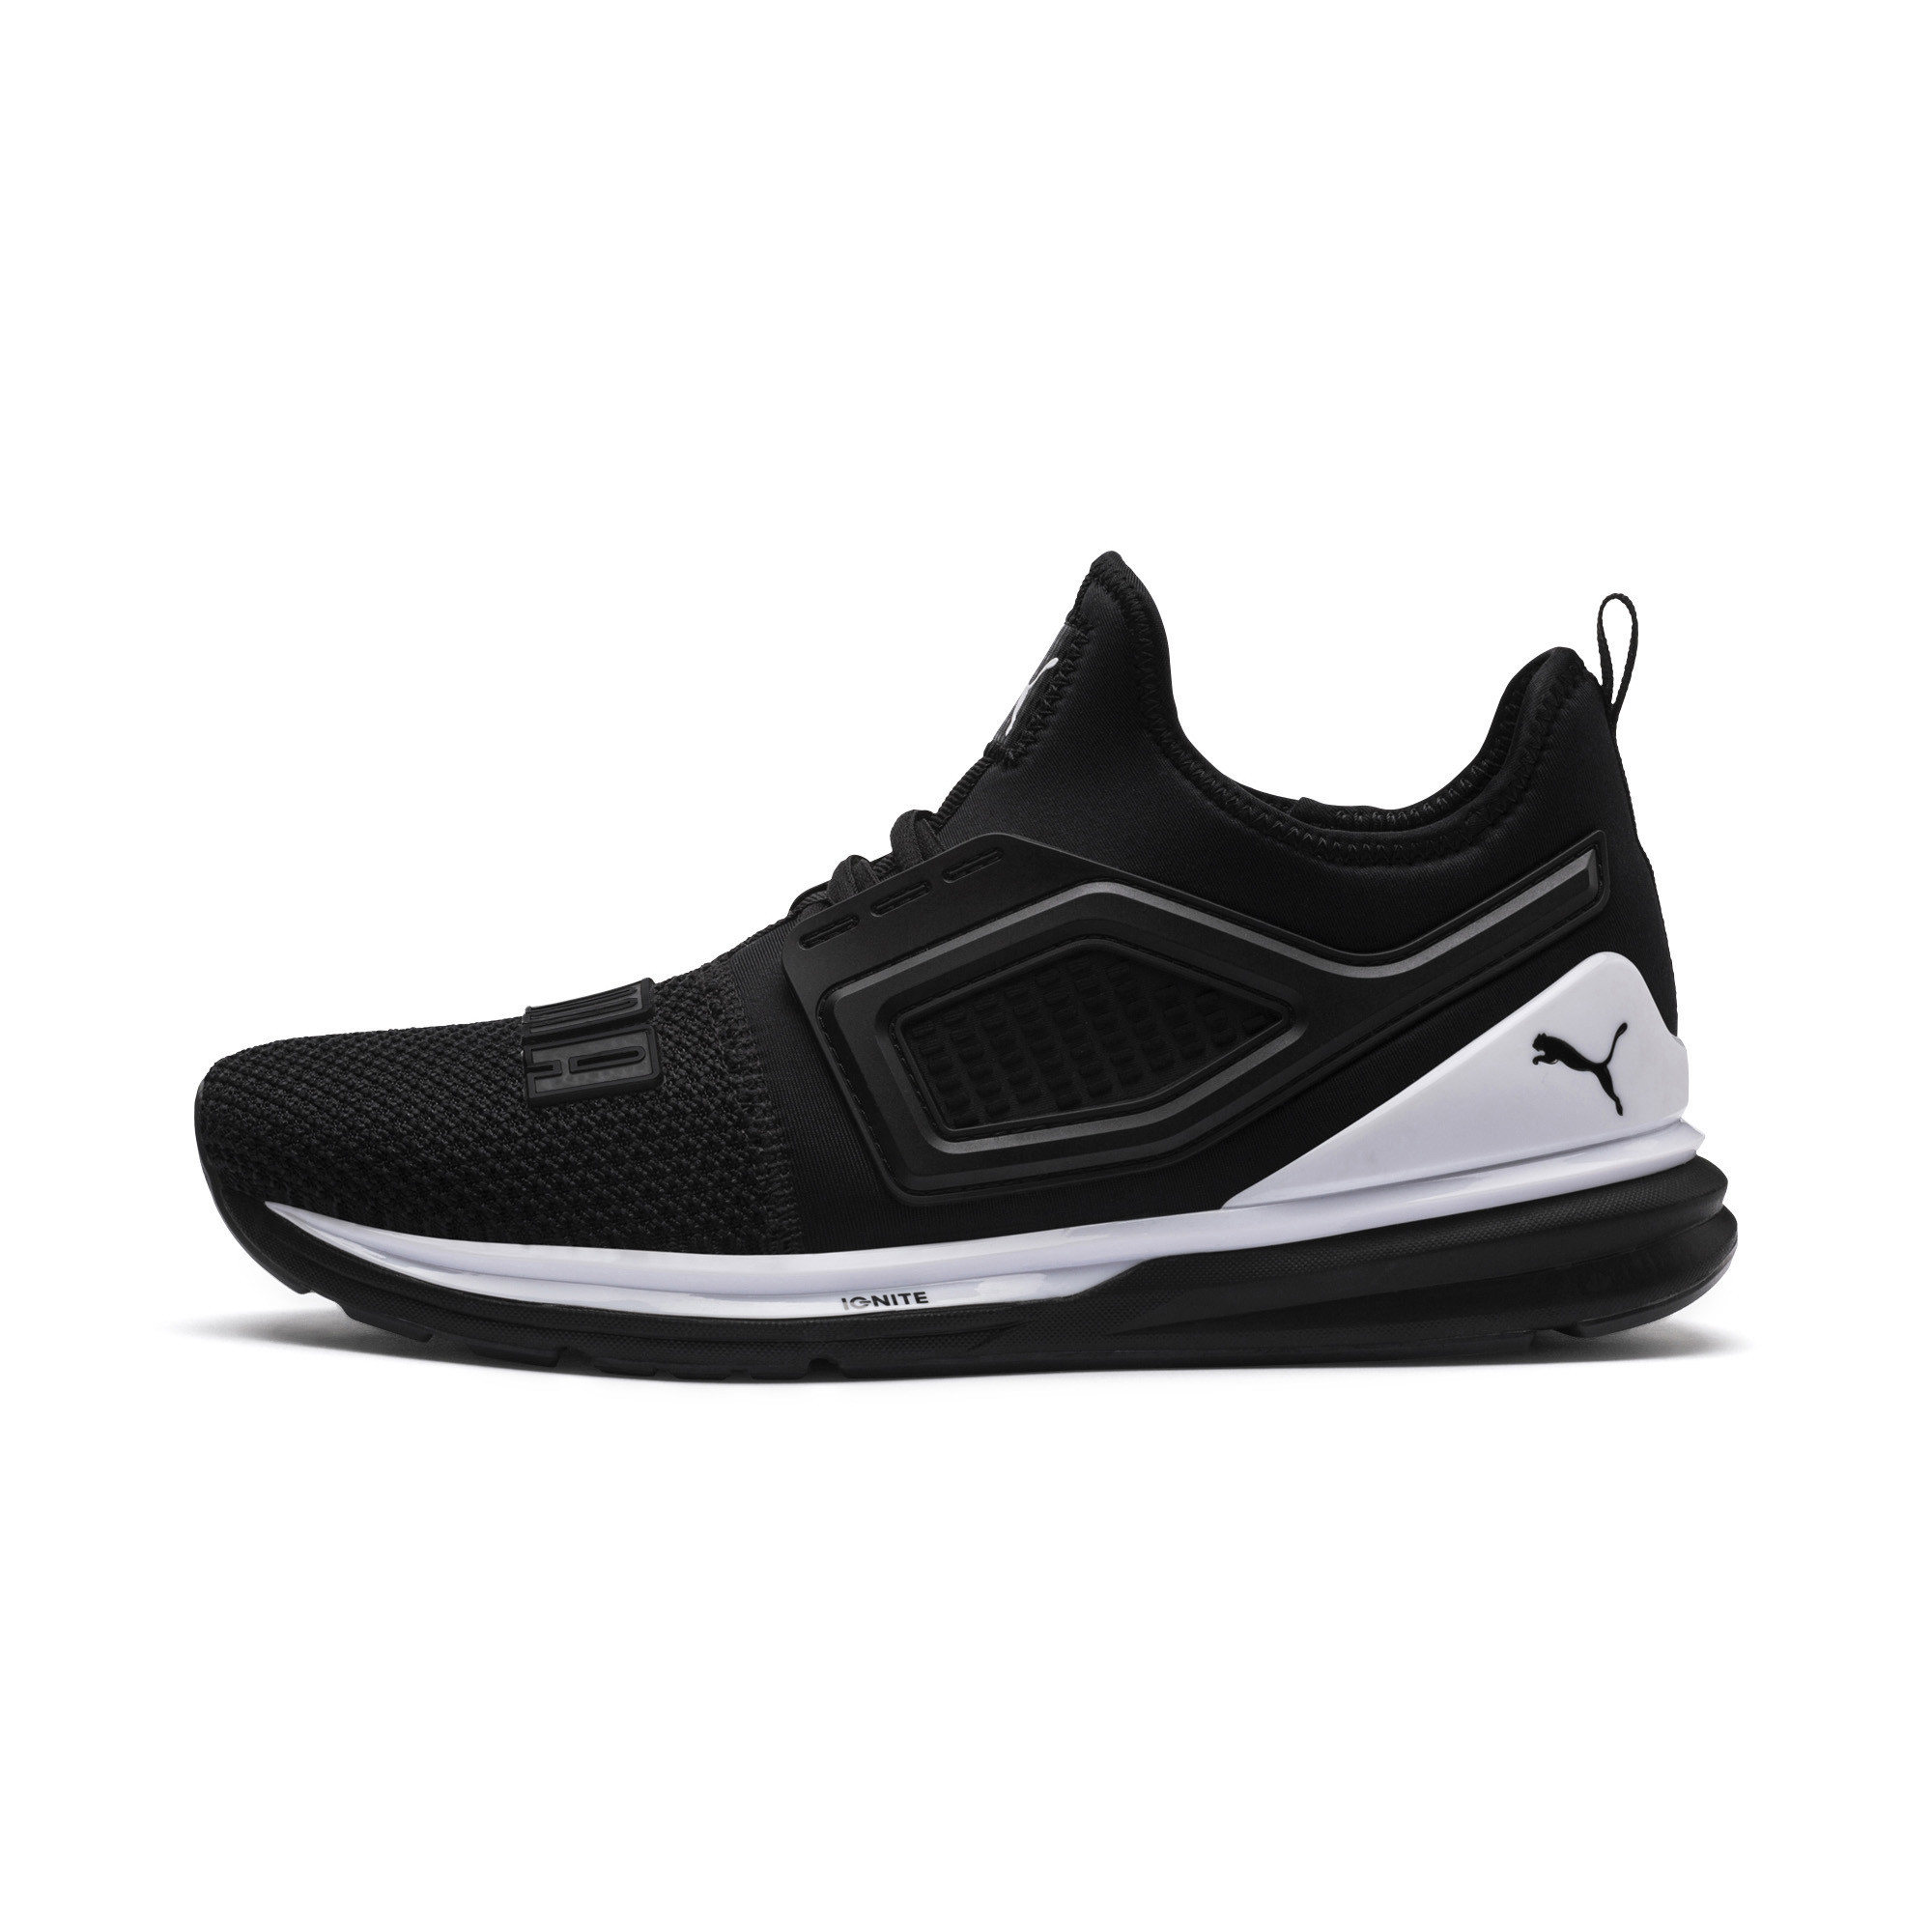 f7af4dd9 Zapatillas de running IGNITE Limitless 2